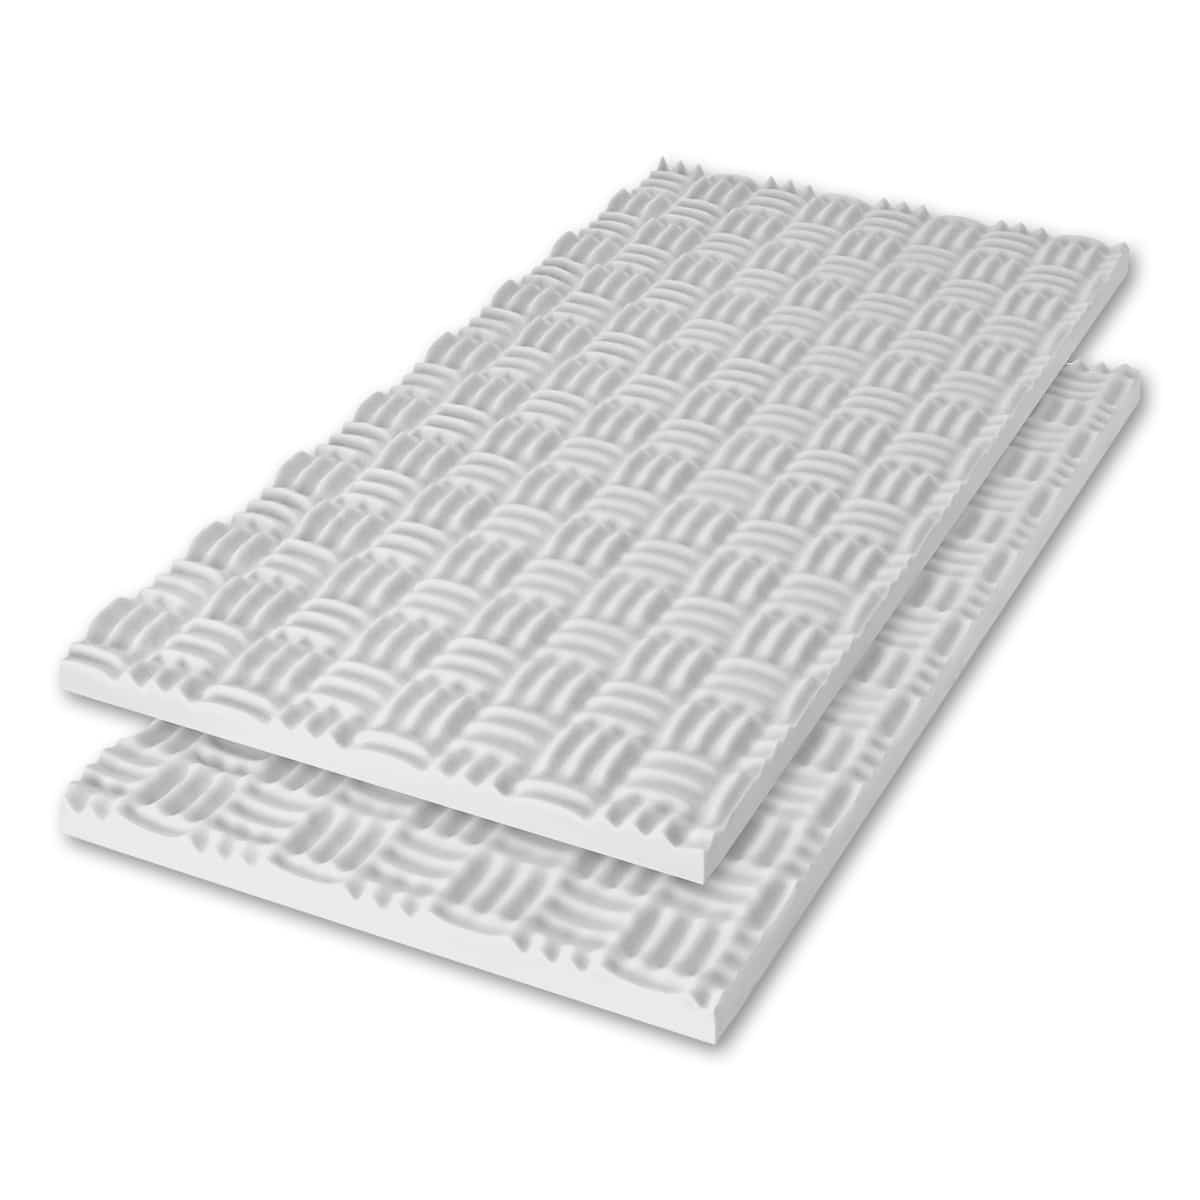 Sonex® Classic Acoustic Foam   Natural Grey (Non Coated)